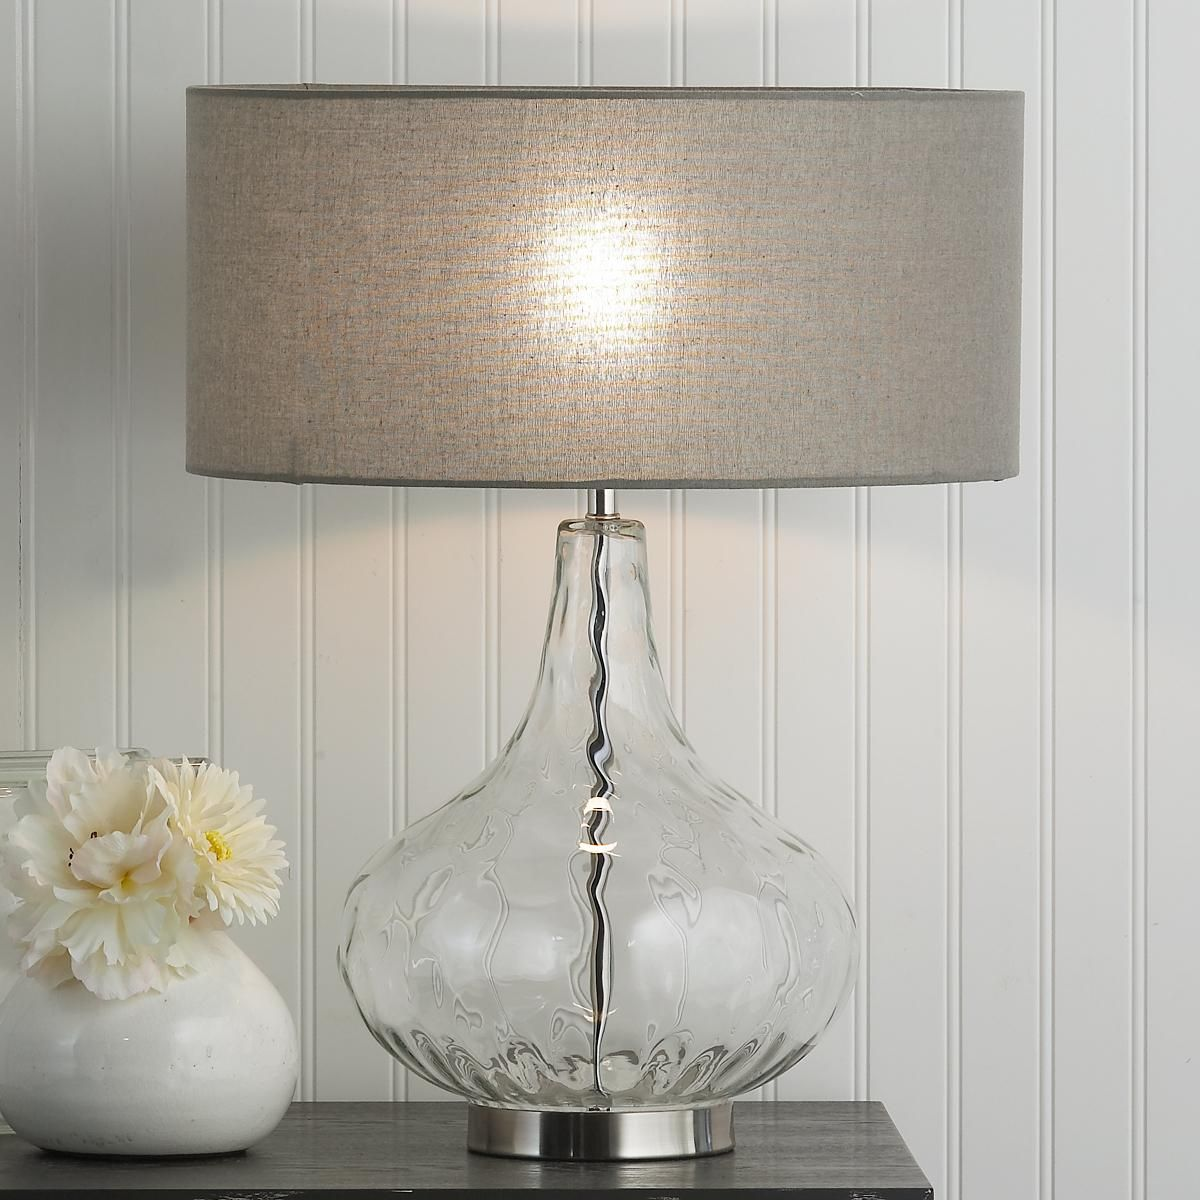 Rippled glass vase table lamp a rippled glass vase sits on a rippled glass vase table lamp a rippled glass vase sits on a polished chrome base and reviewsmspy